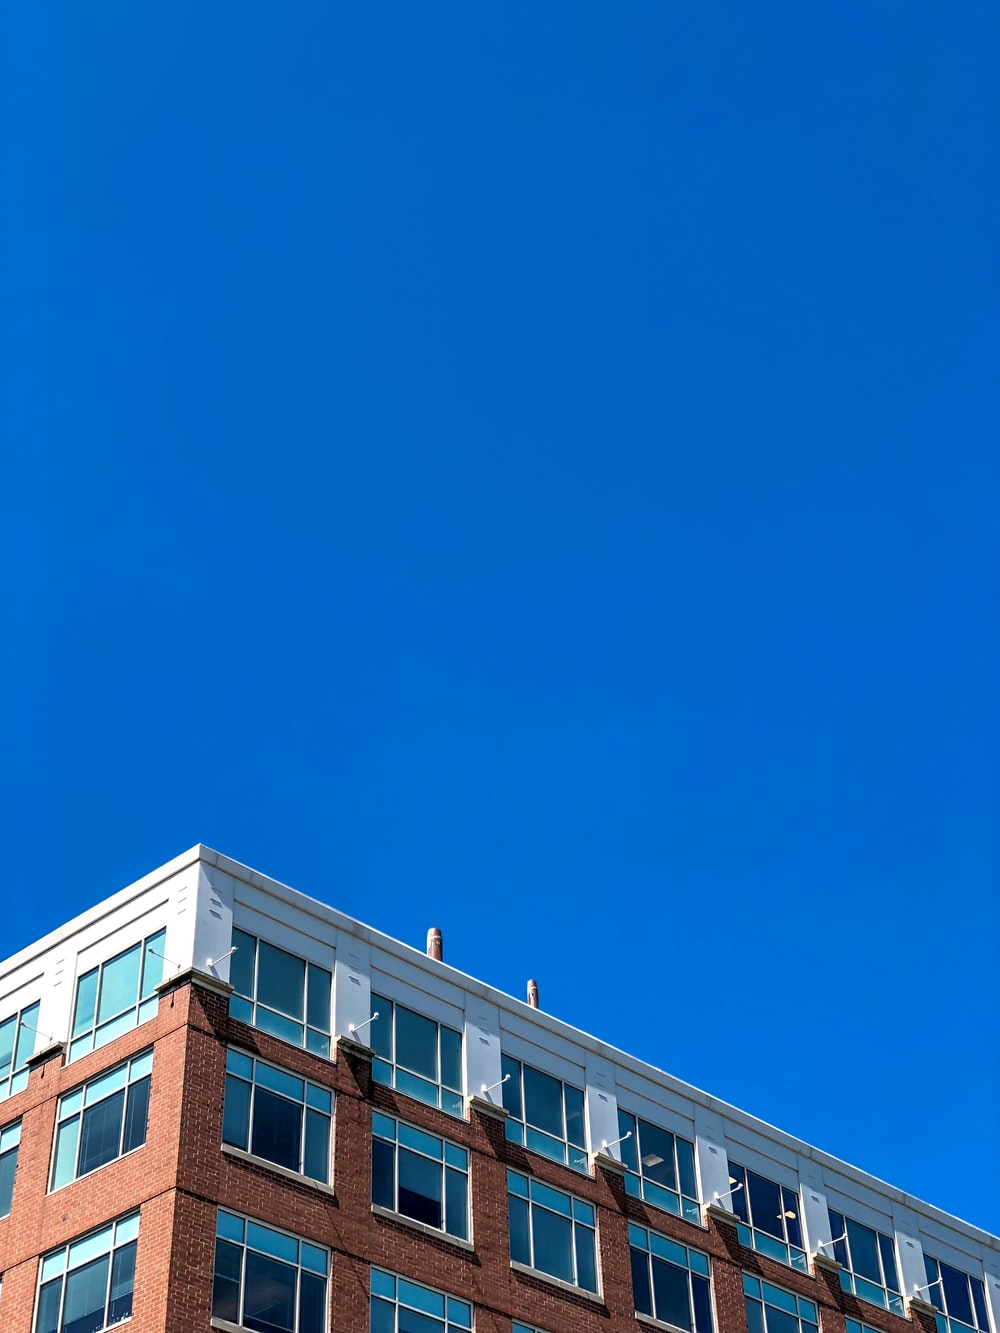 white and brown building under clear blue sky